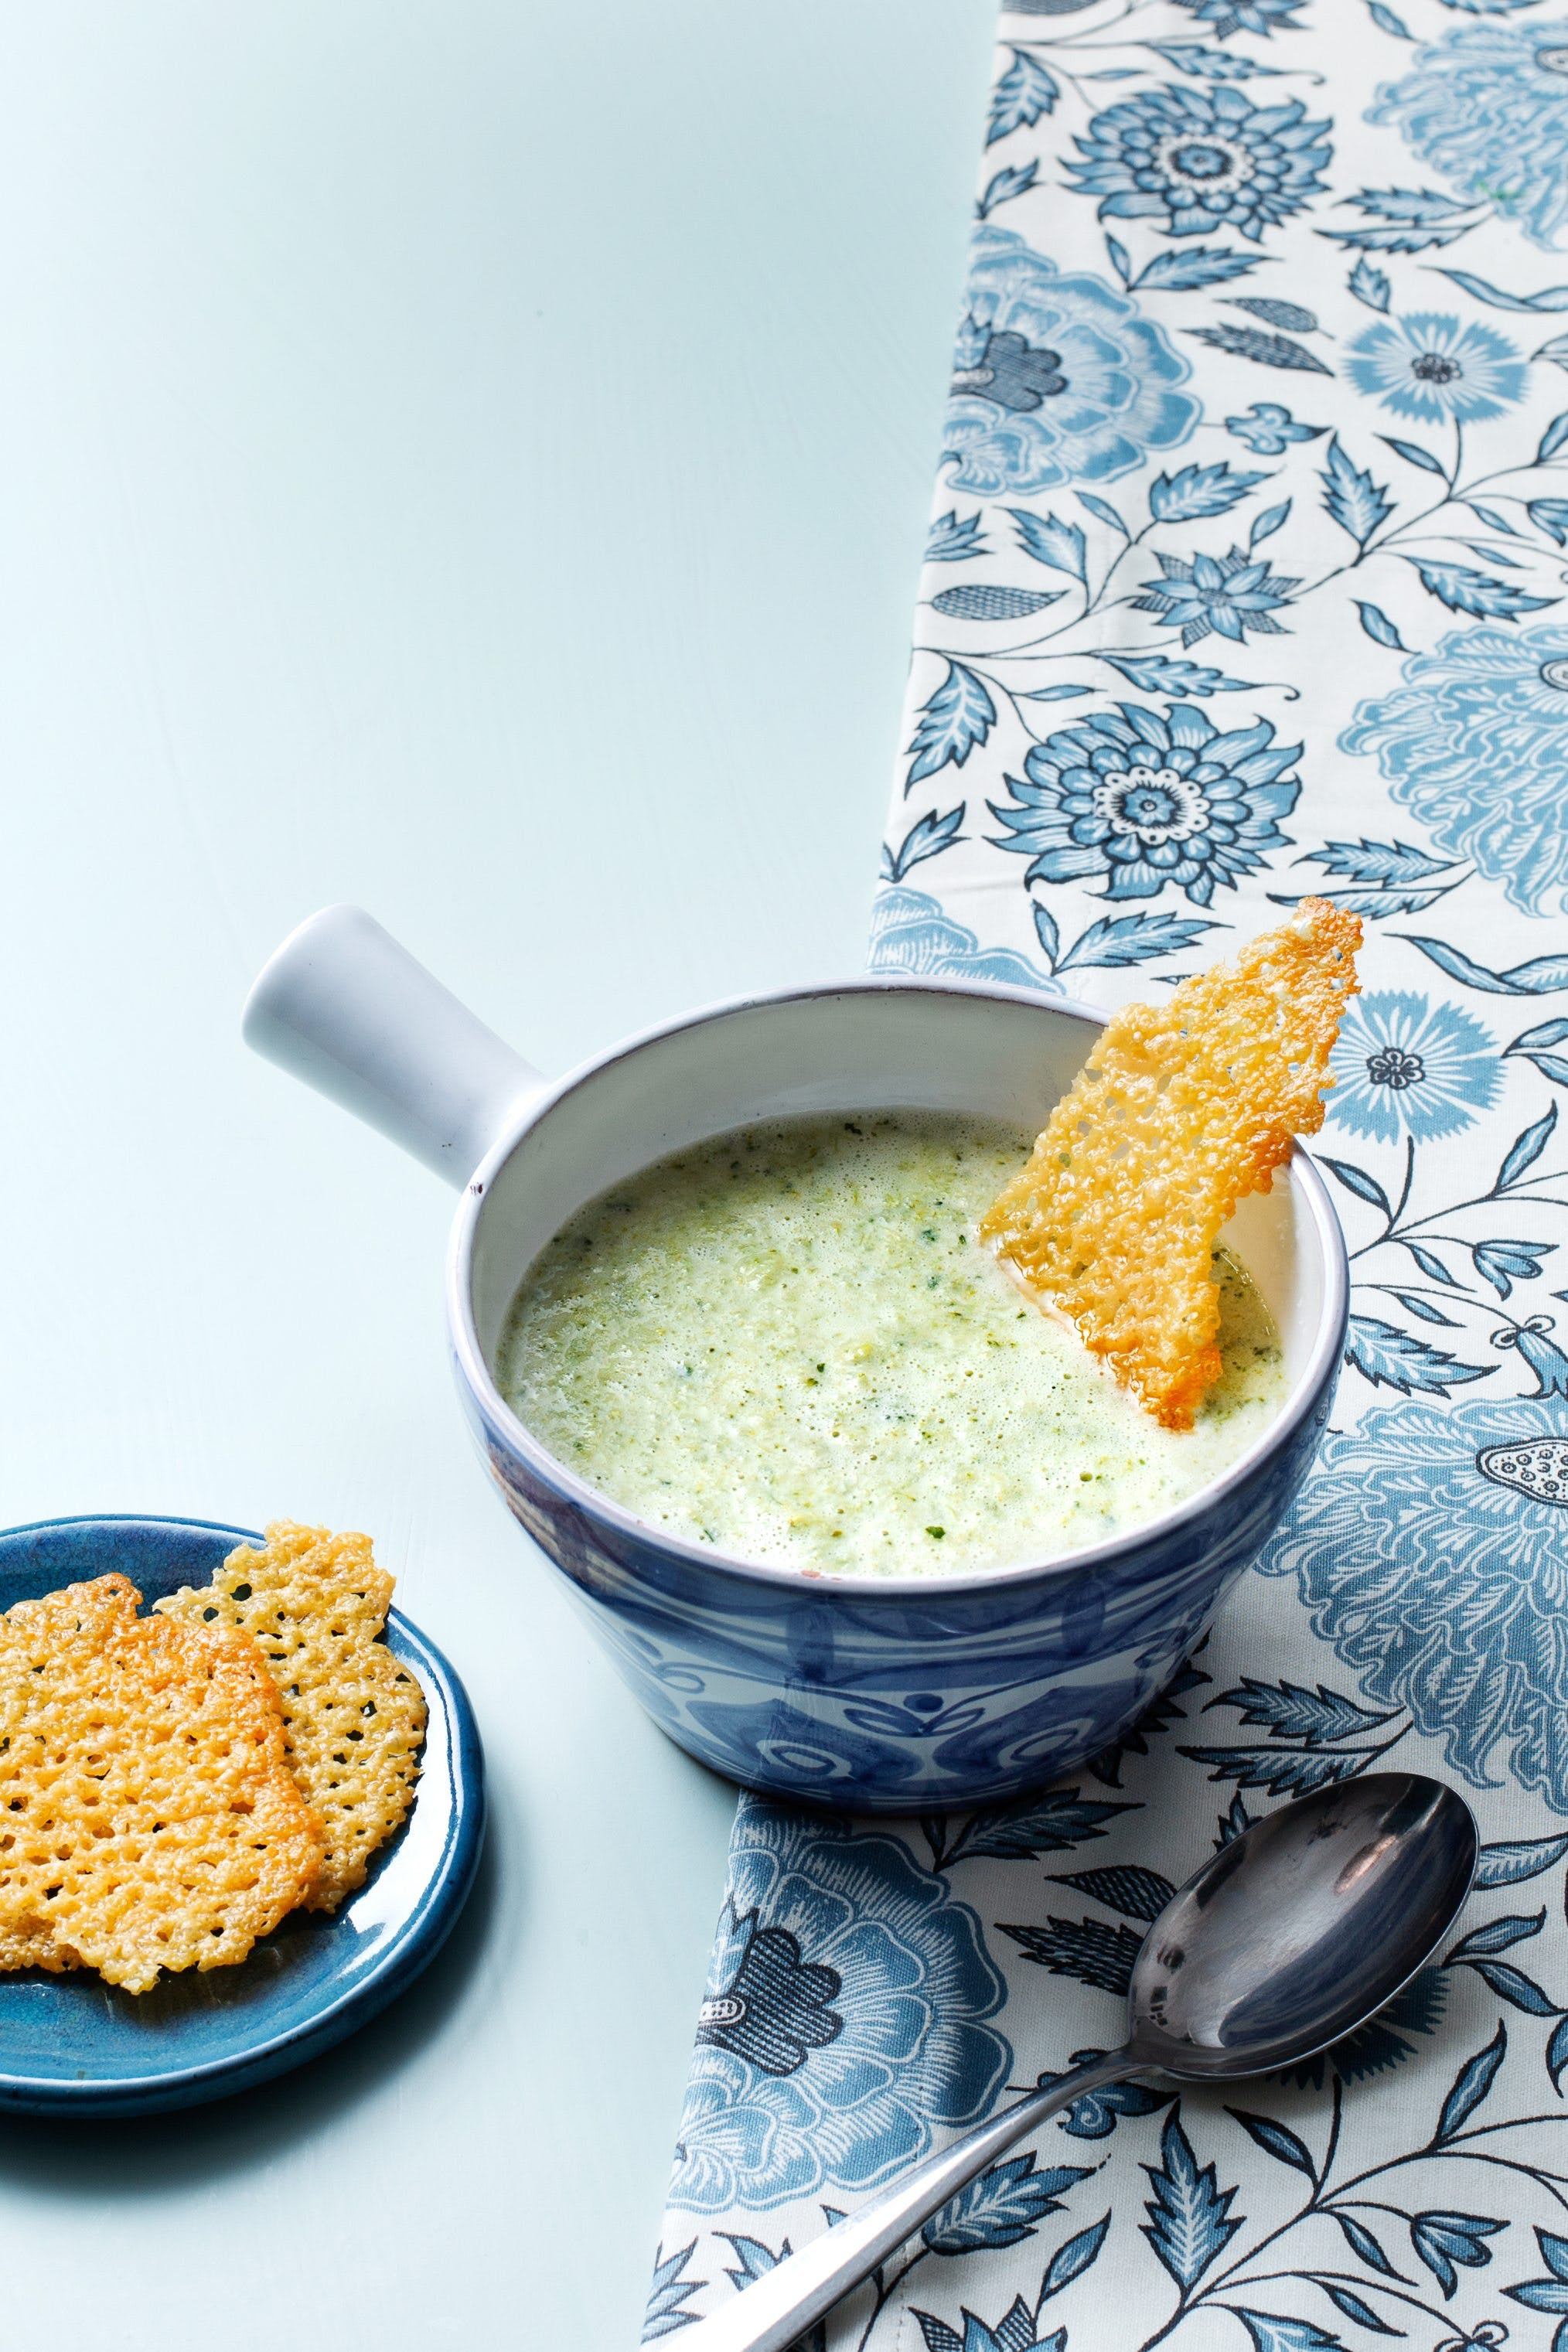 Creamy low-carb broccoli and leek soup